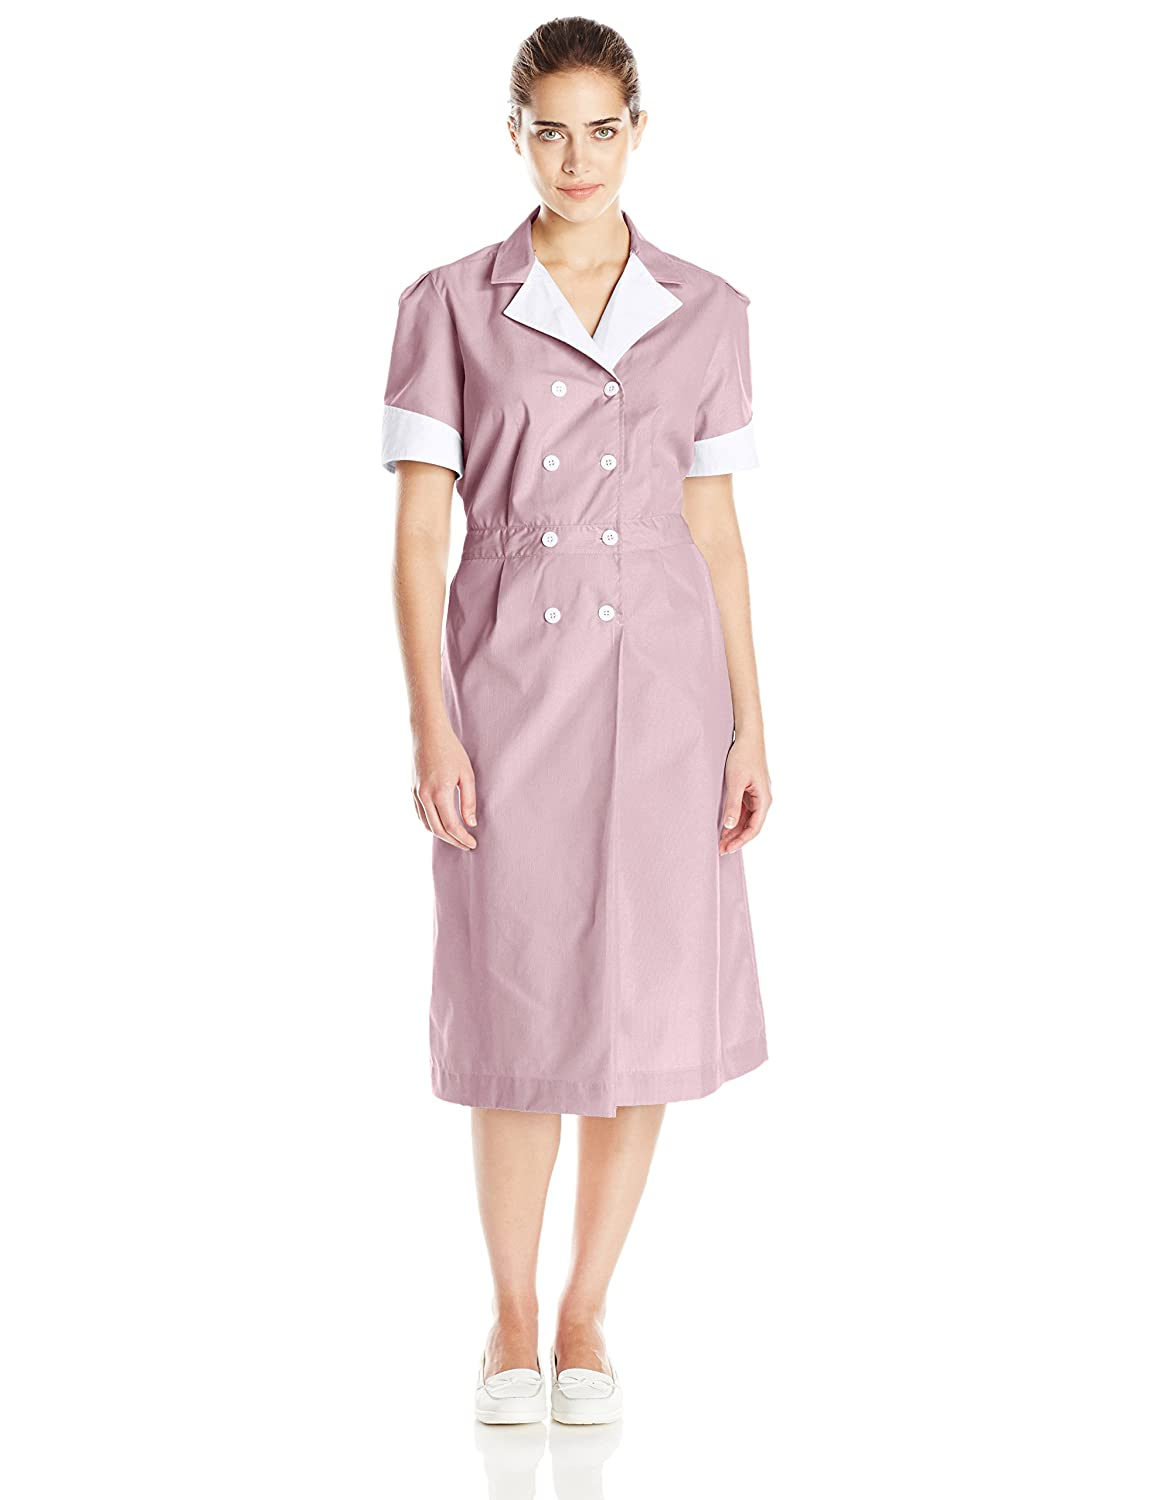 1920s Day Dresses, Tea Dresses, Mature Dresses with Sleeves Red Kap Womens Lapel Dress $71.59 AT vintagedancer.com